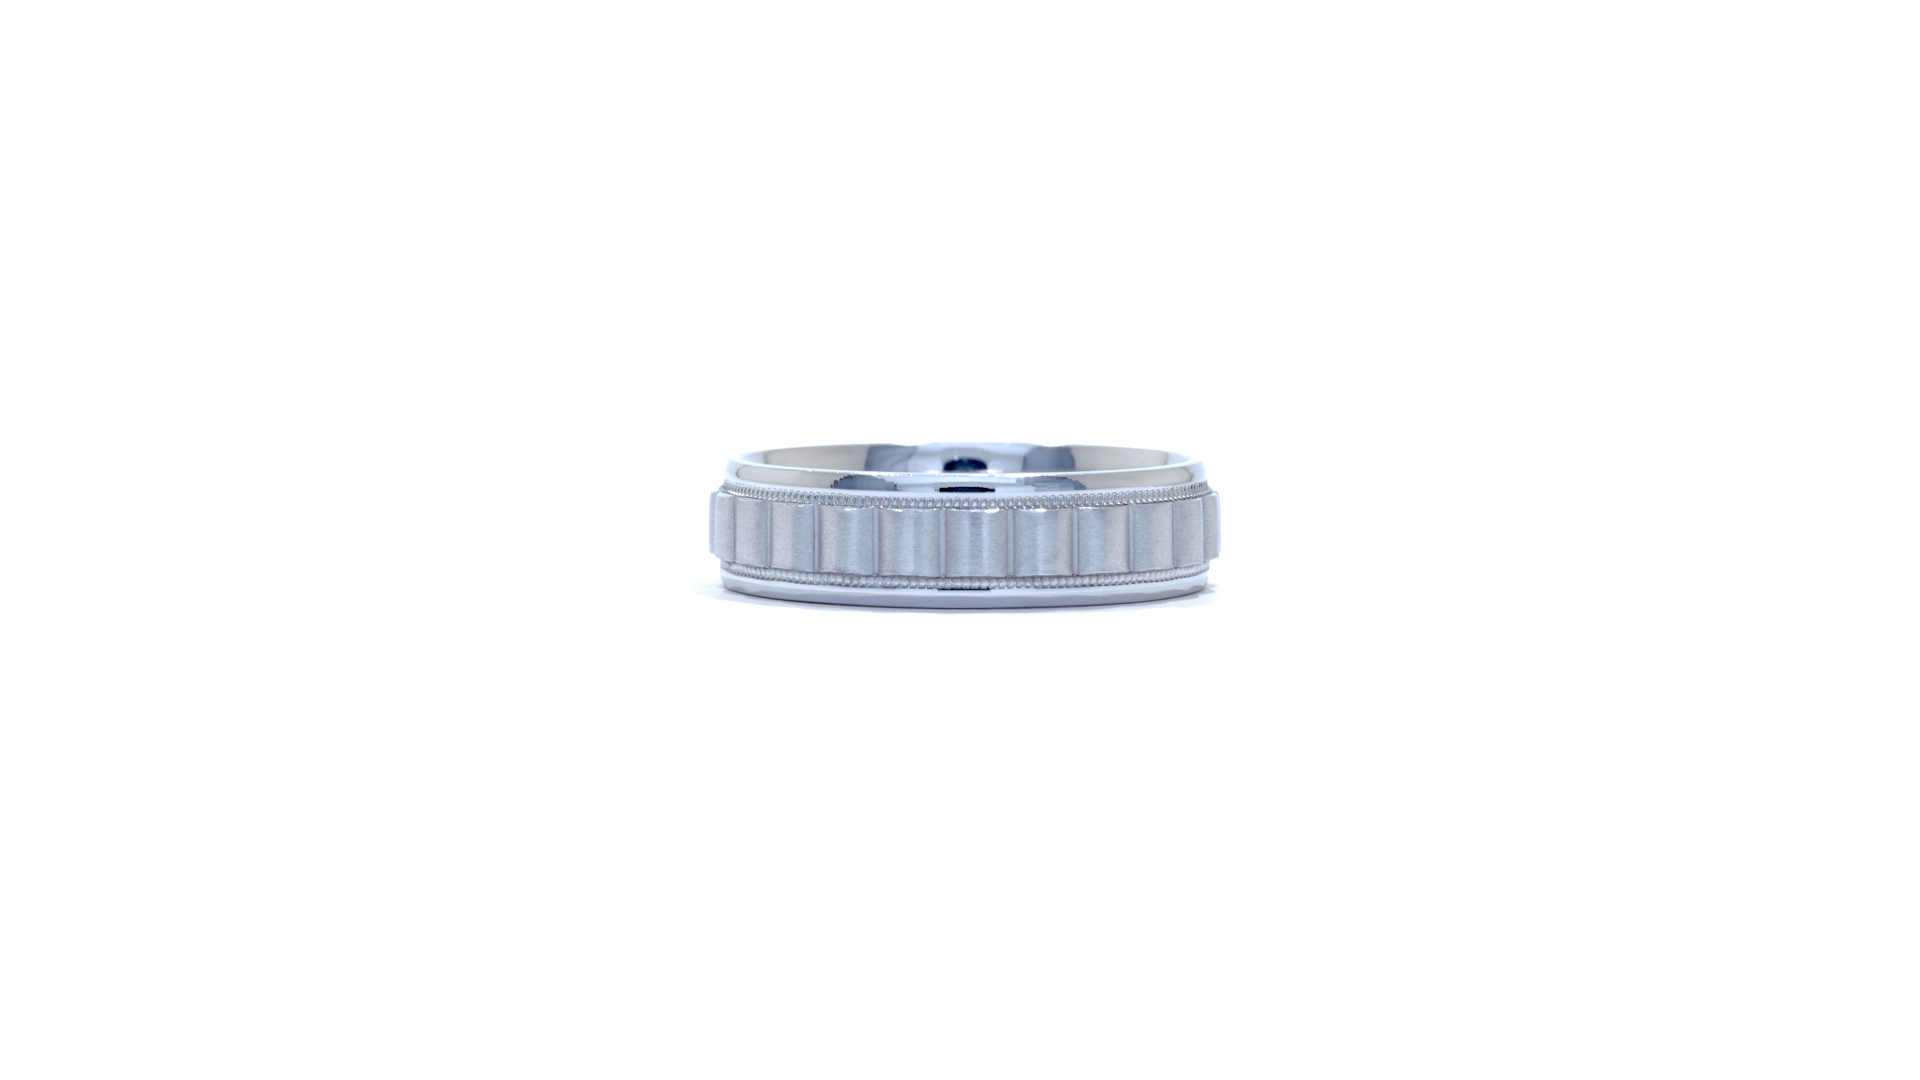 35595 - Fluted Men's Wedding Band at Ascot Diamonds